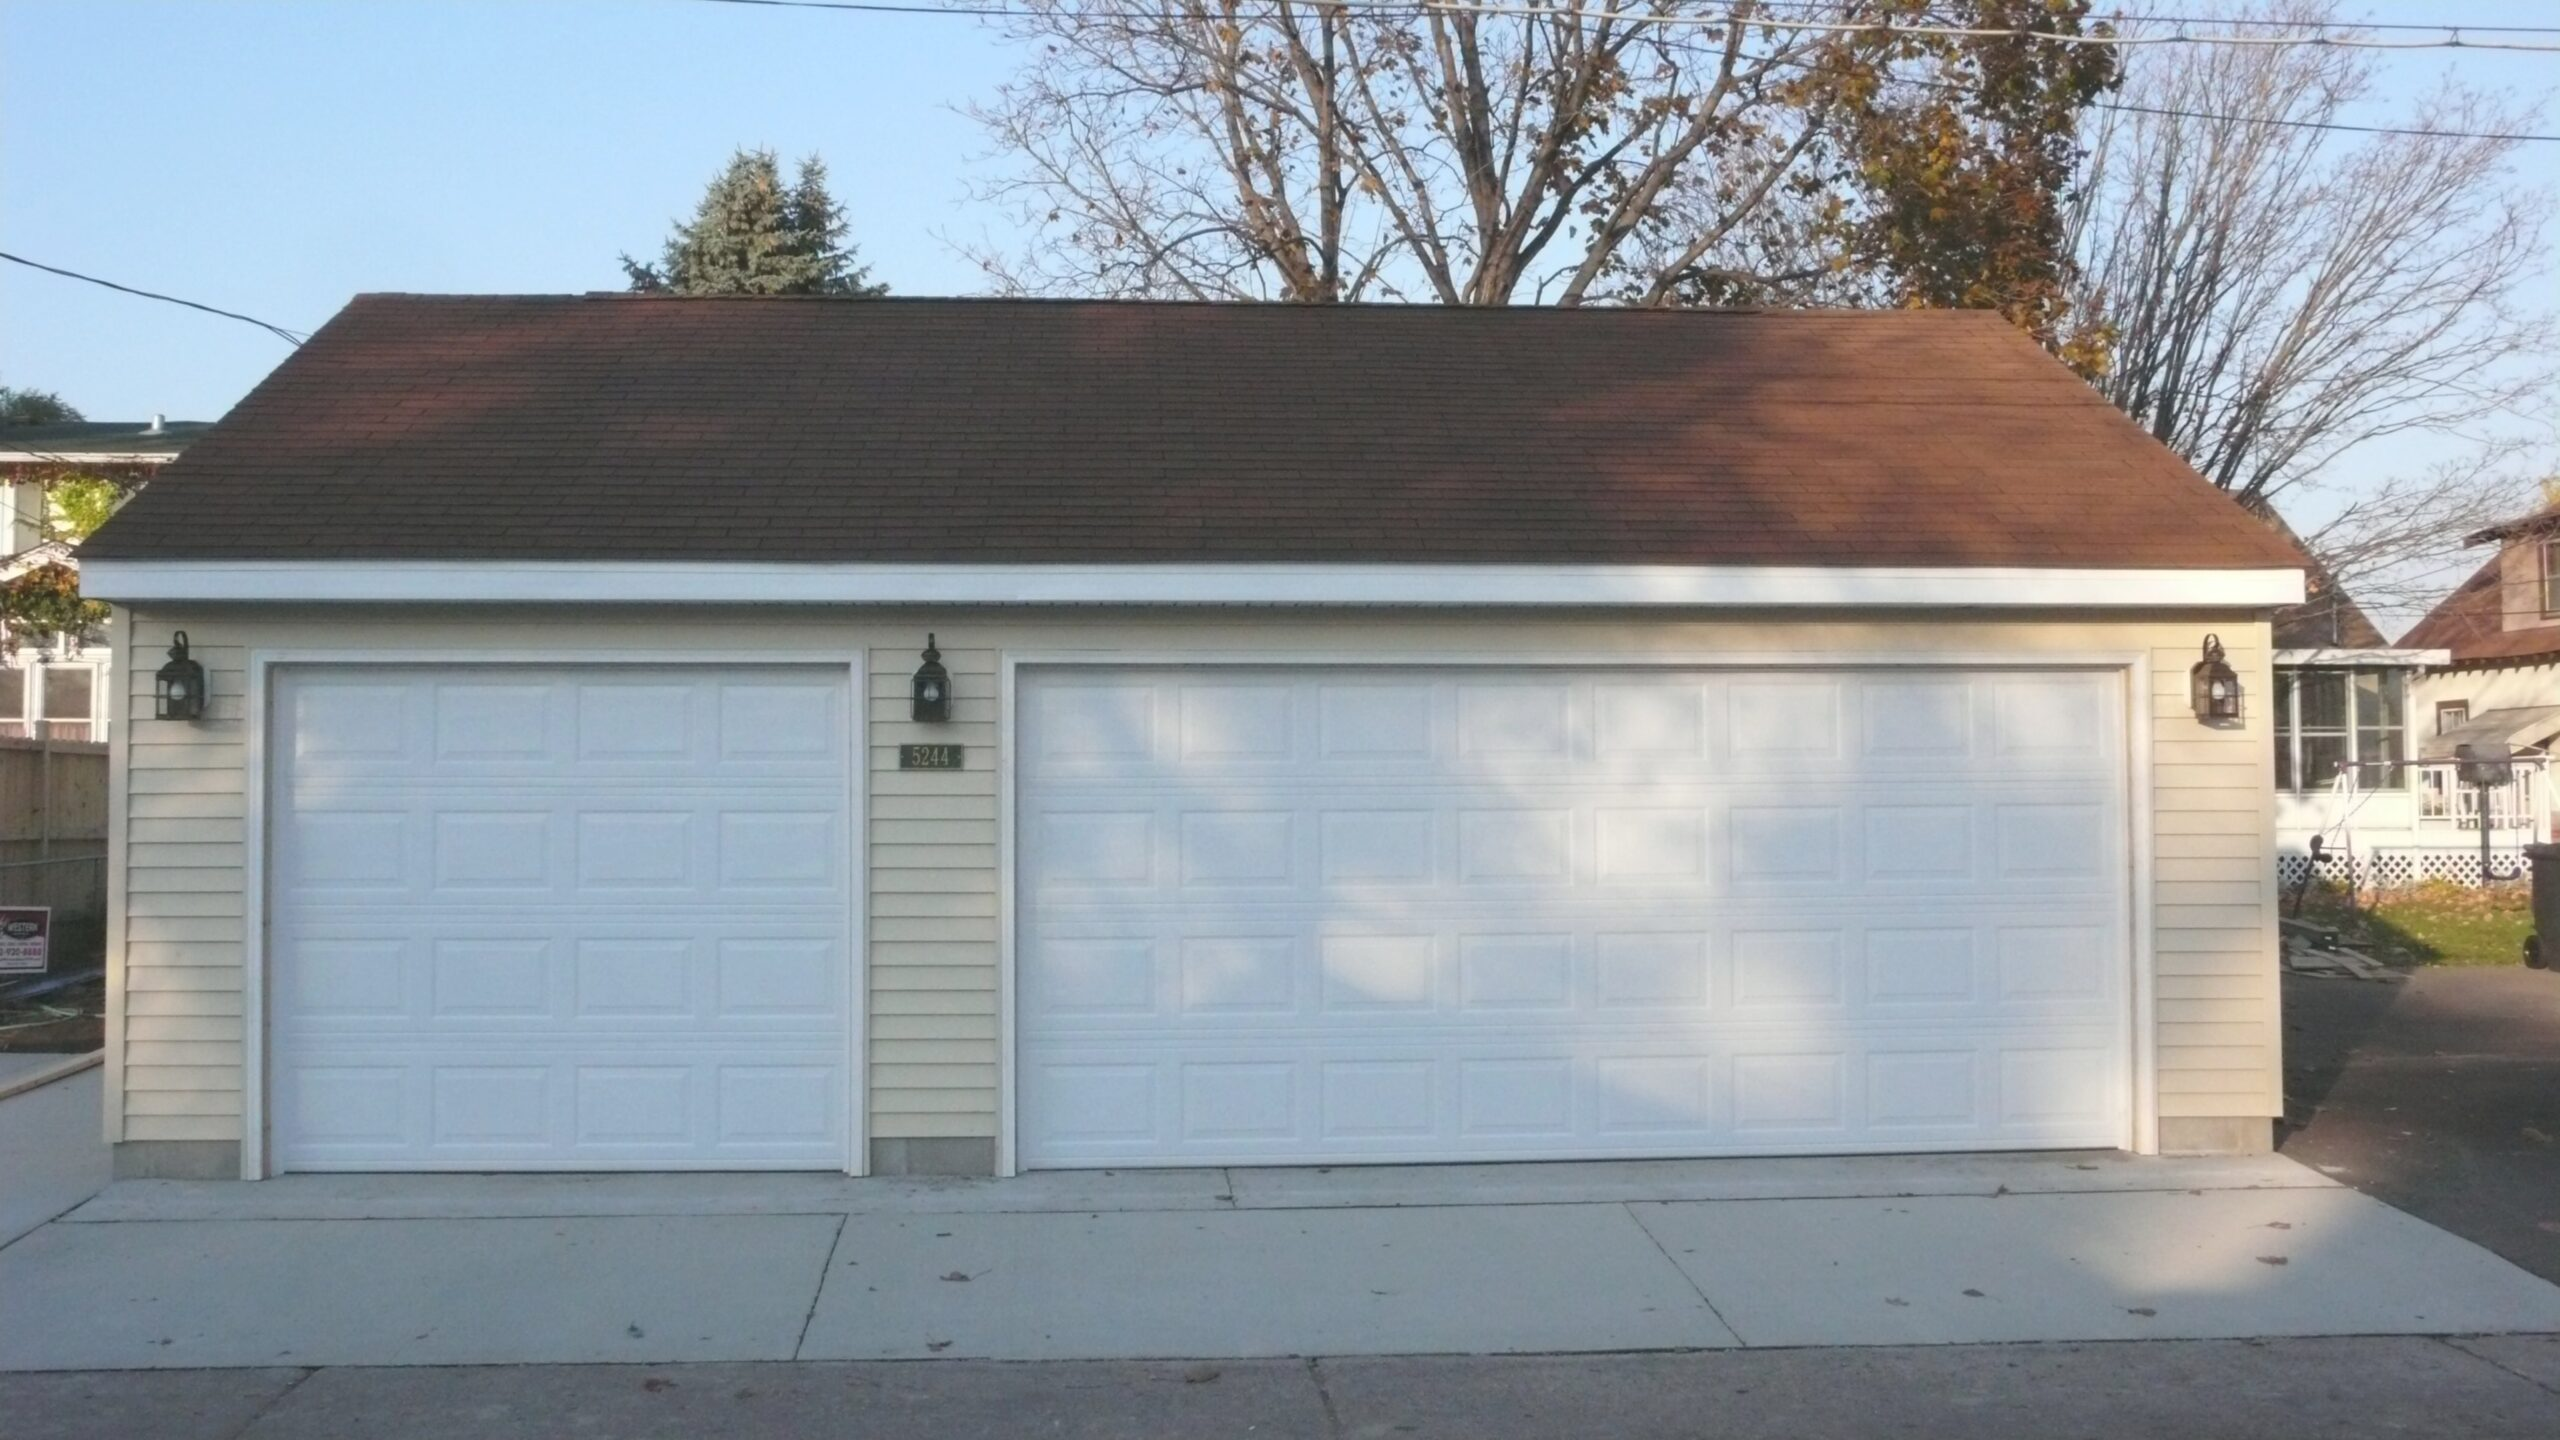 Garage Builders Mn - Garage Sizes | Garage Designs regarding Size Of 2 Car Garage